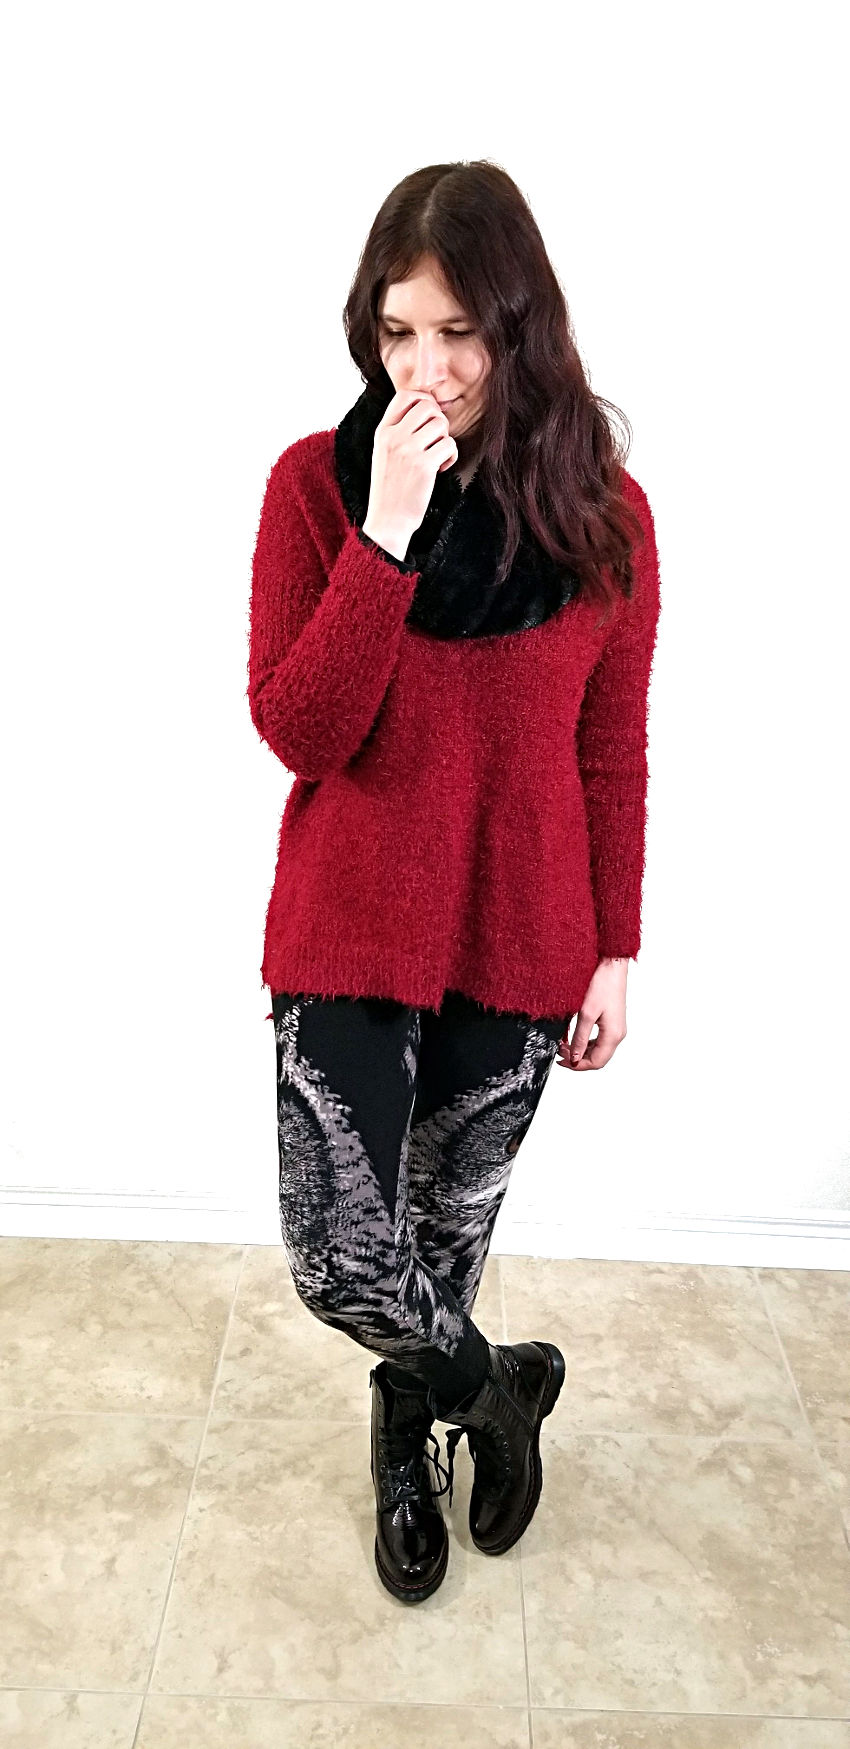 Polar Bear Style Owl Leggings Burgundy Oversized Sweater Black Fuzzy Scarf Patent Leather Combat Boots